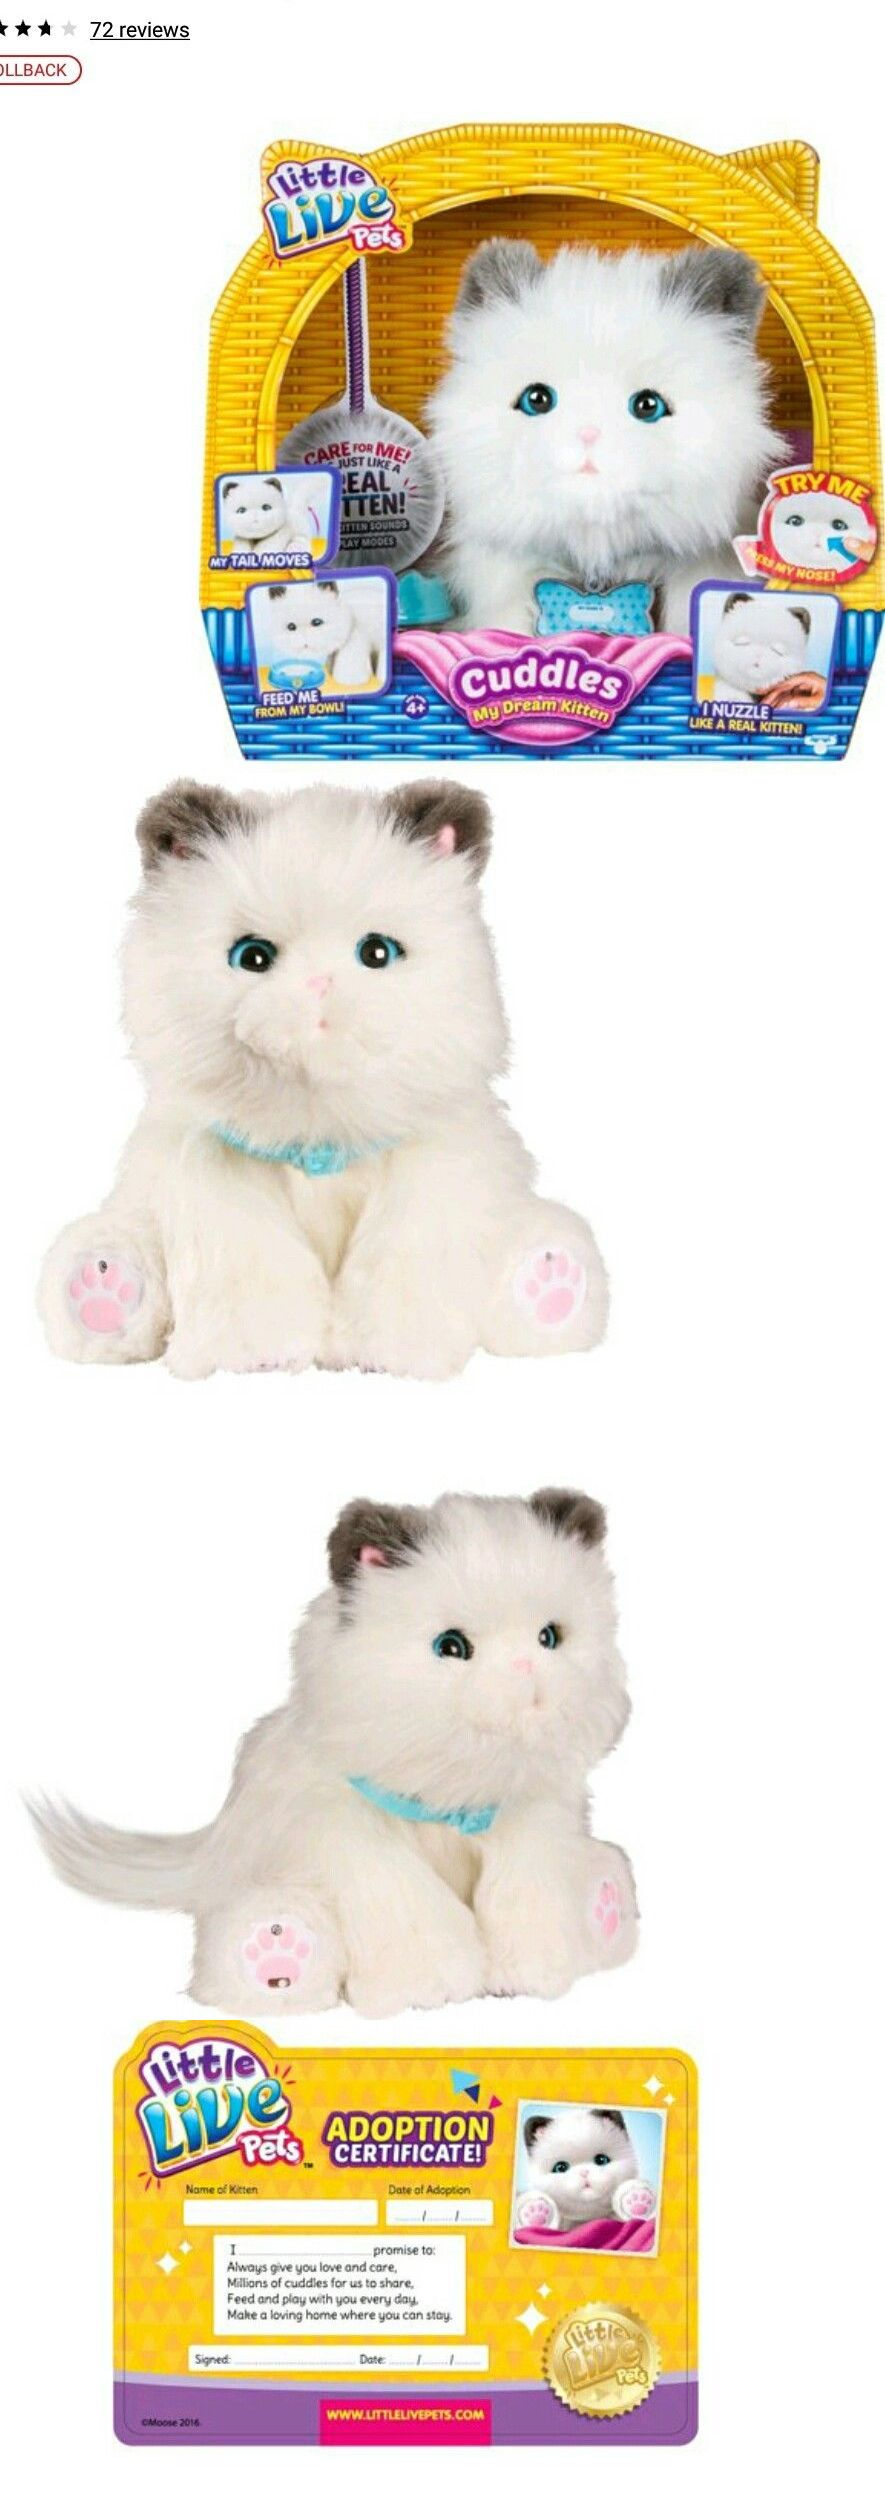 Animals 145942 New Little Live Pets My Dream Kitten Cuddles Interactive Toy White Cat Buy It Now Only 34 Pets Cuddling Little Live Pets Kitten Plush Toy